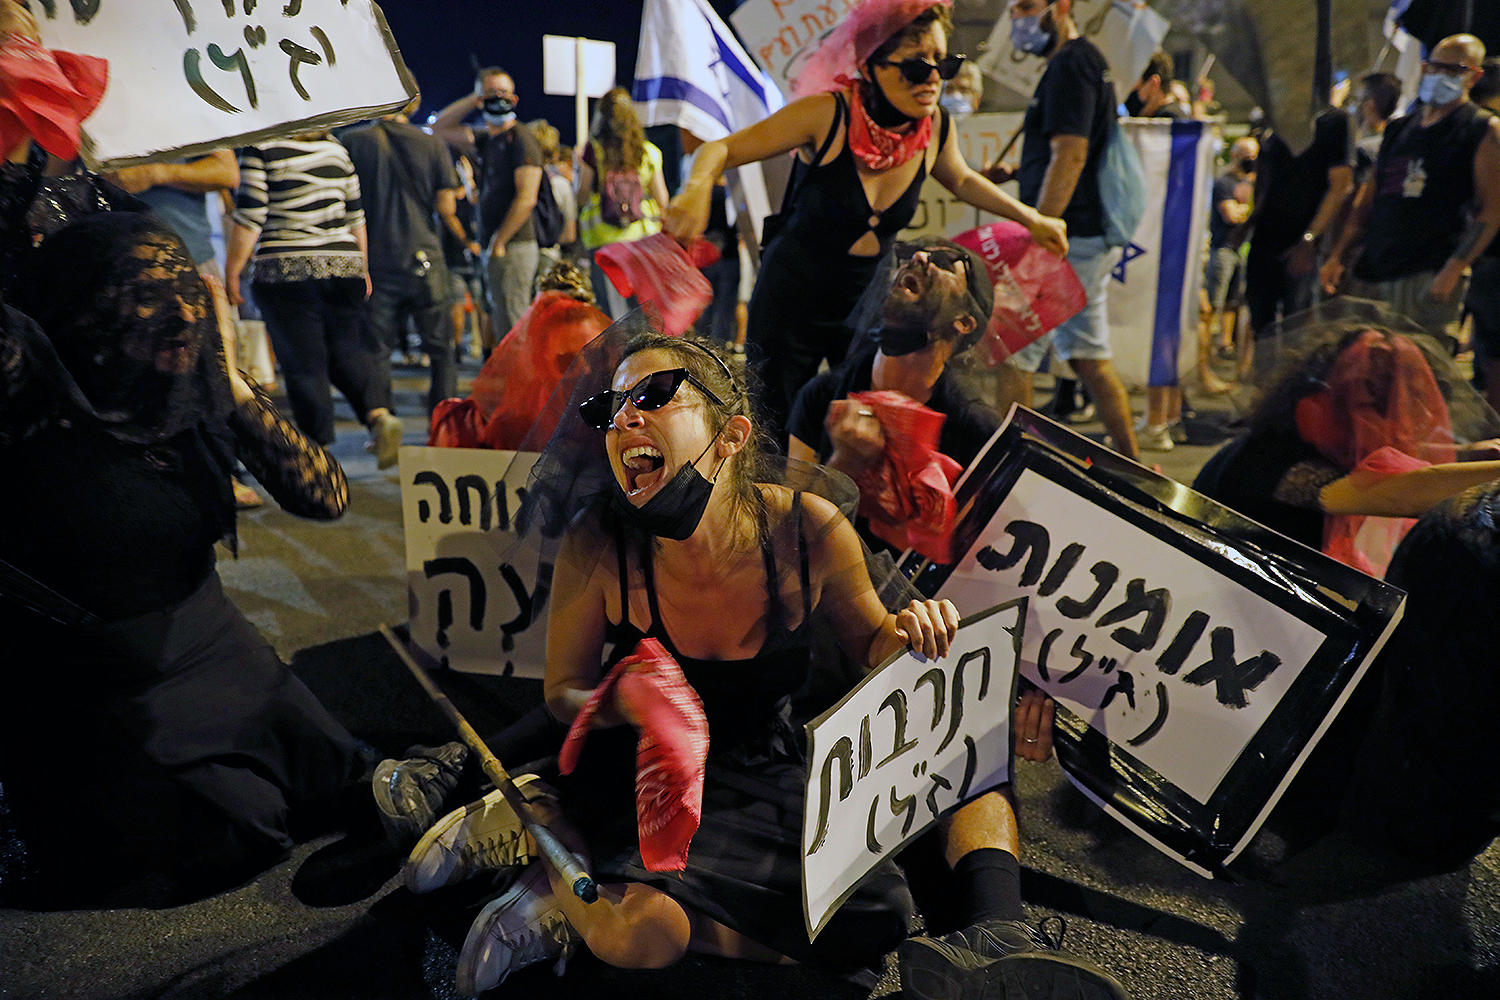 Israelis protest against Prime Minister Benjamin Netanyahu in Jerusalem on July 30. Protests have grown against the veteran premier over his handling of the coronavirus pandemic and the resulting economic crisis. AHMAD GHARABLI/AFP via Getty Images